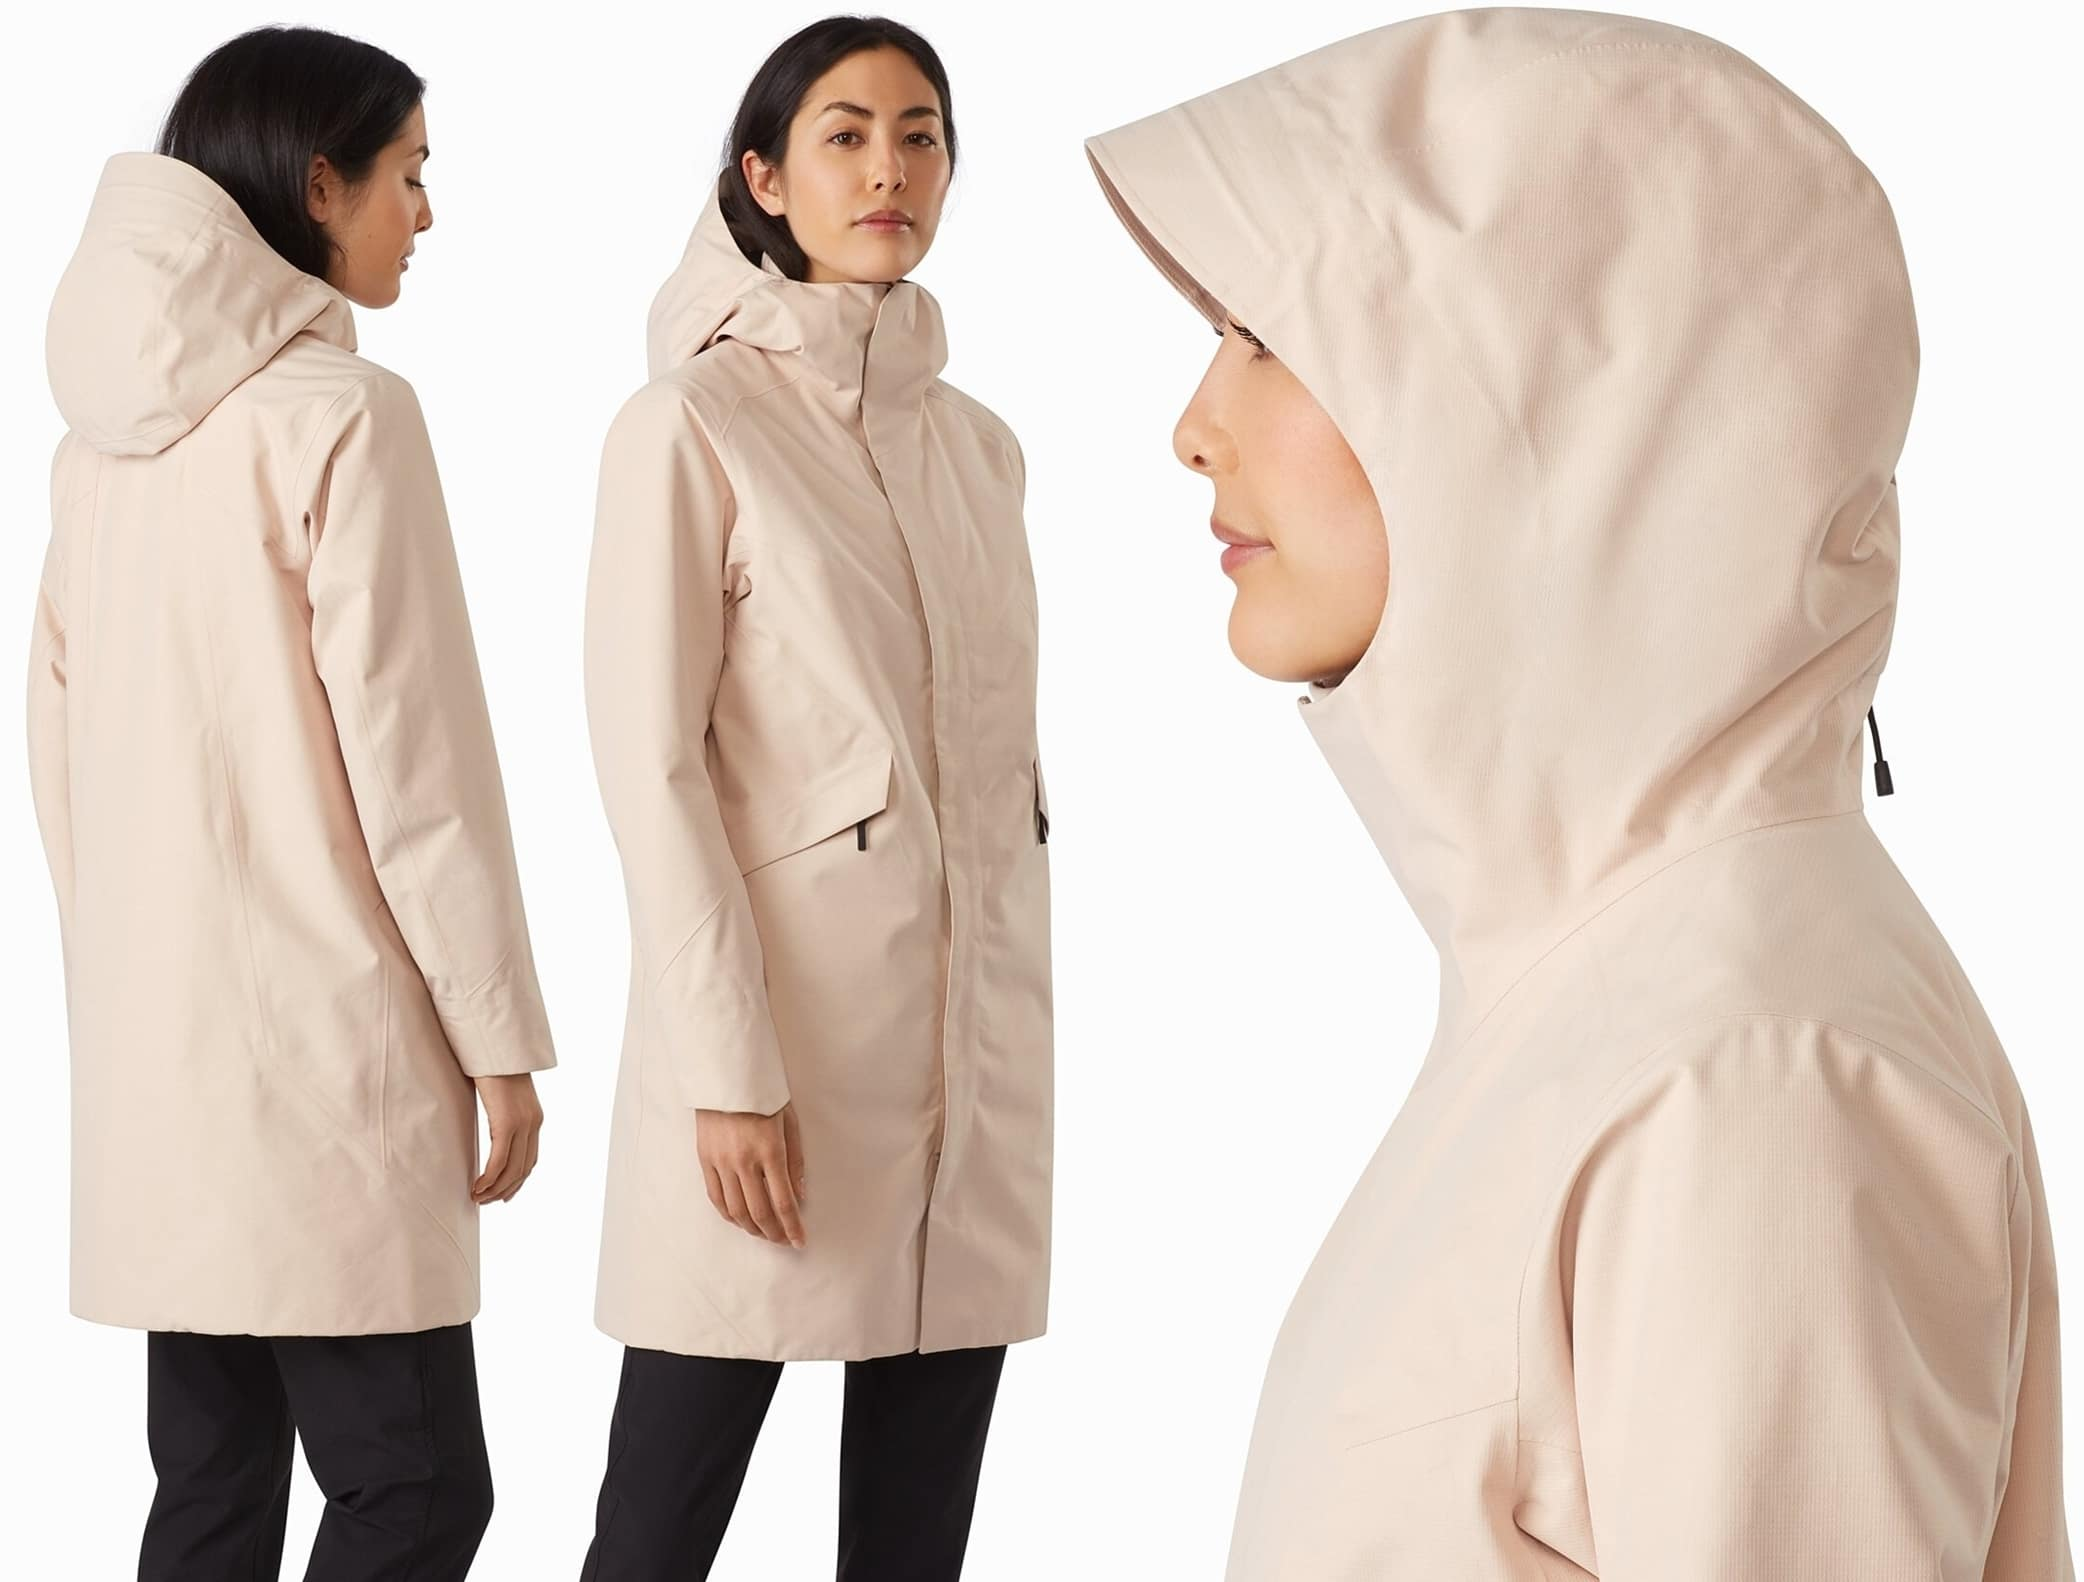 GORE-TEX protection and lightweight warmth in a coat with everyday city style